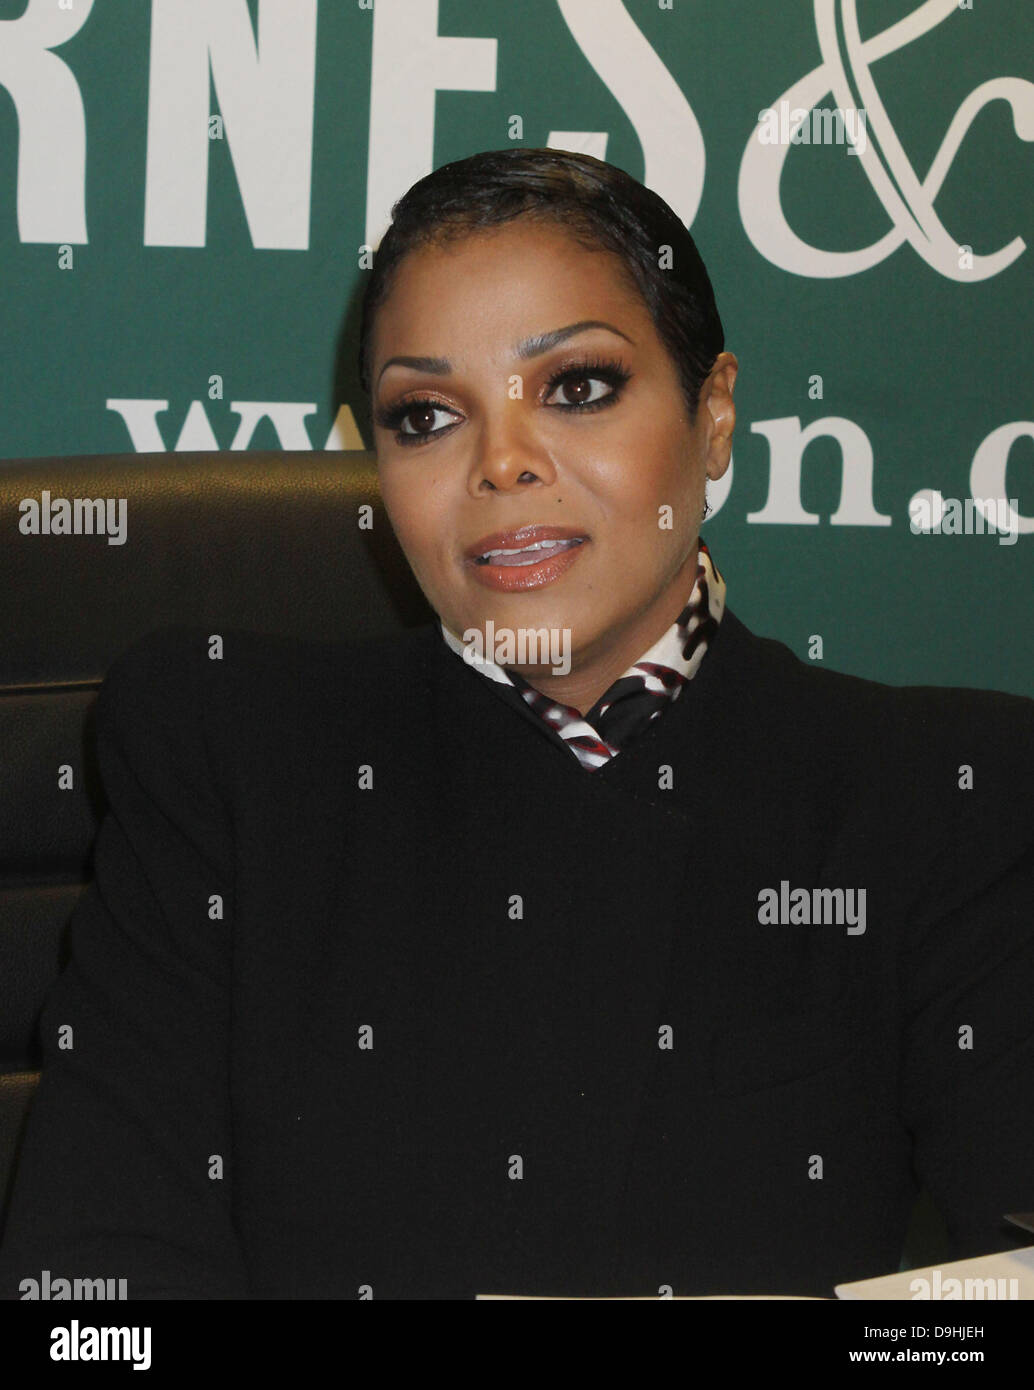 Janet Jackson attends a book signing for 'True You: A Guide